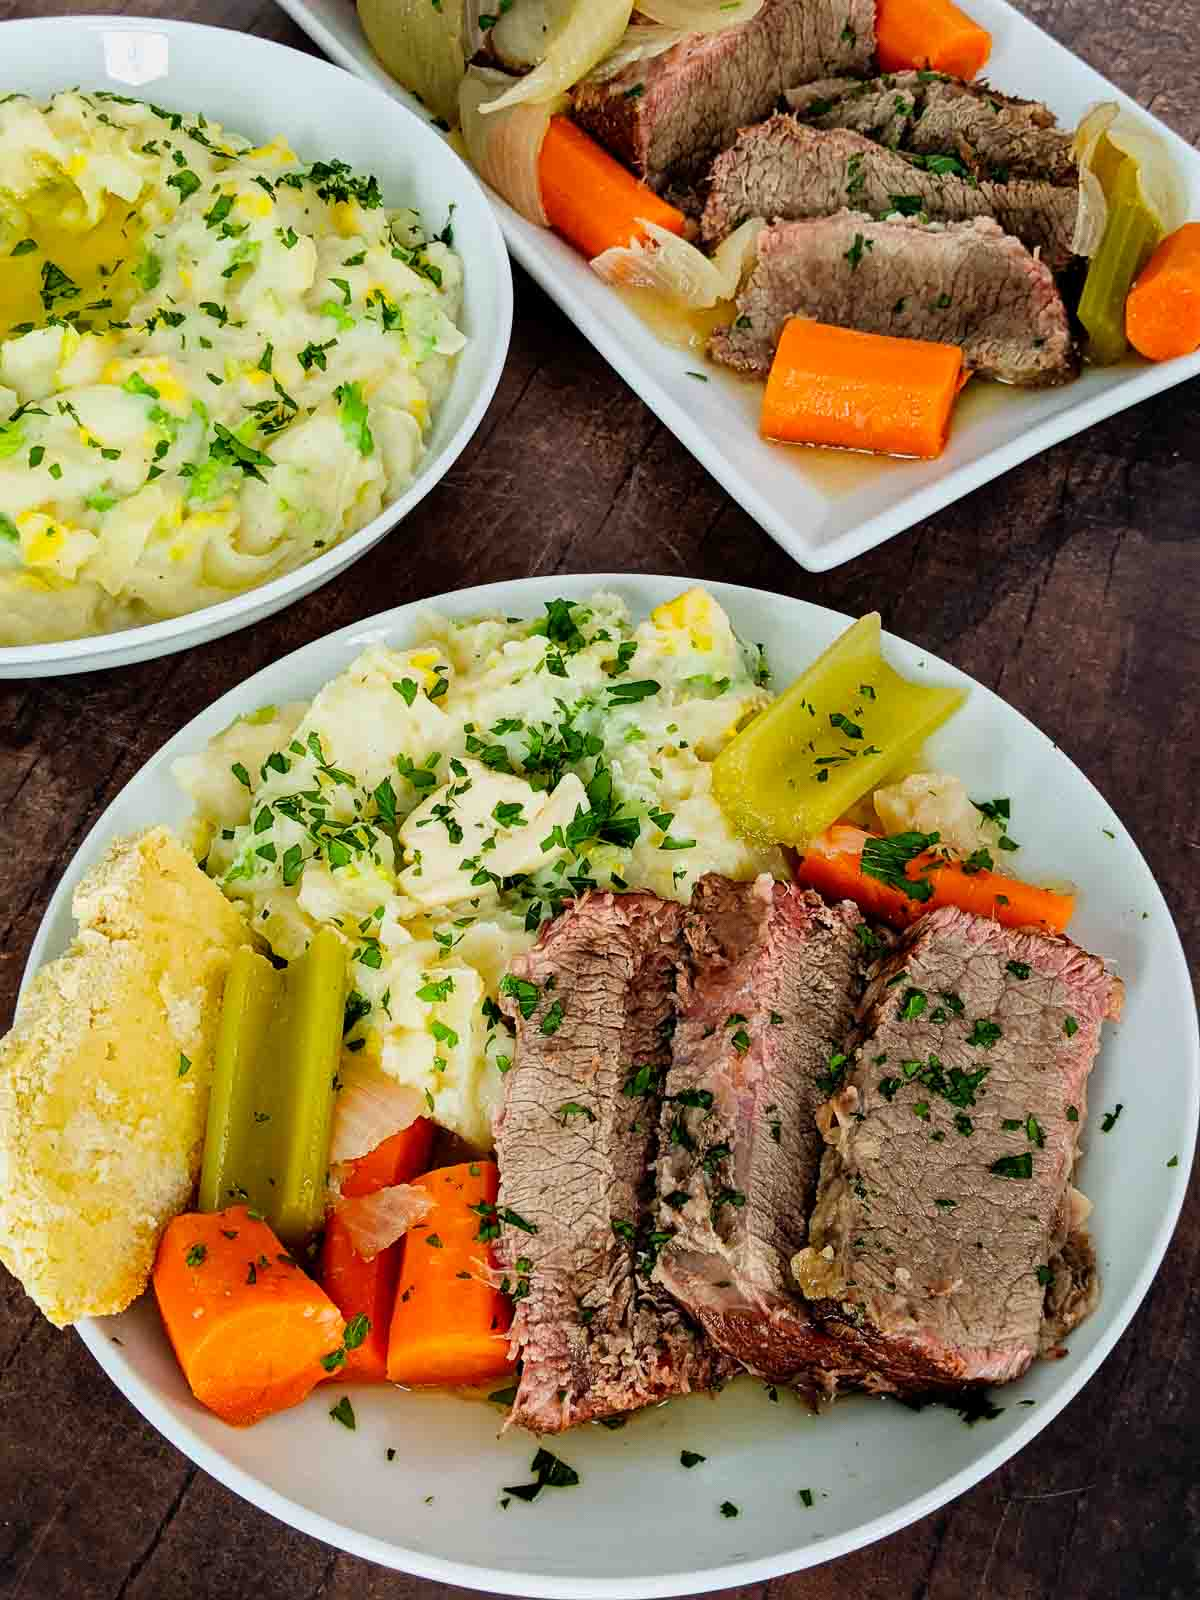 corned beef dinner with colcannon and brisket